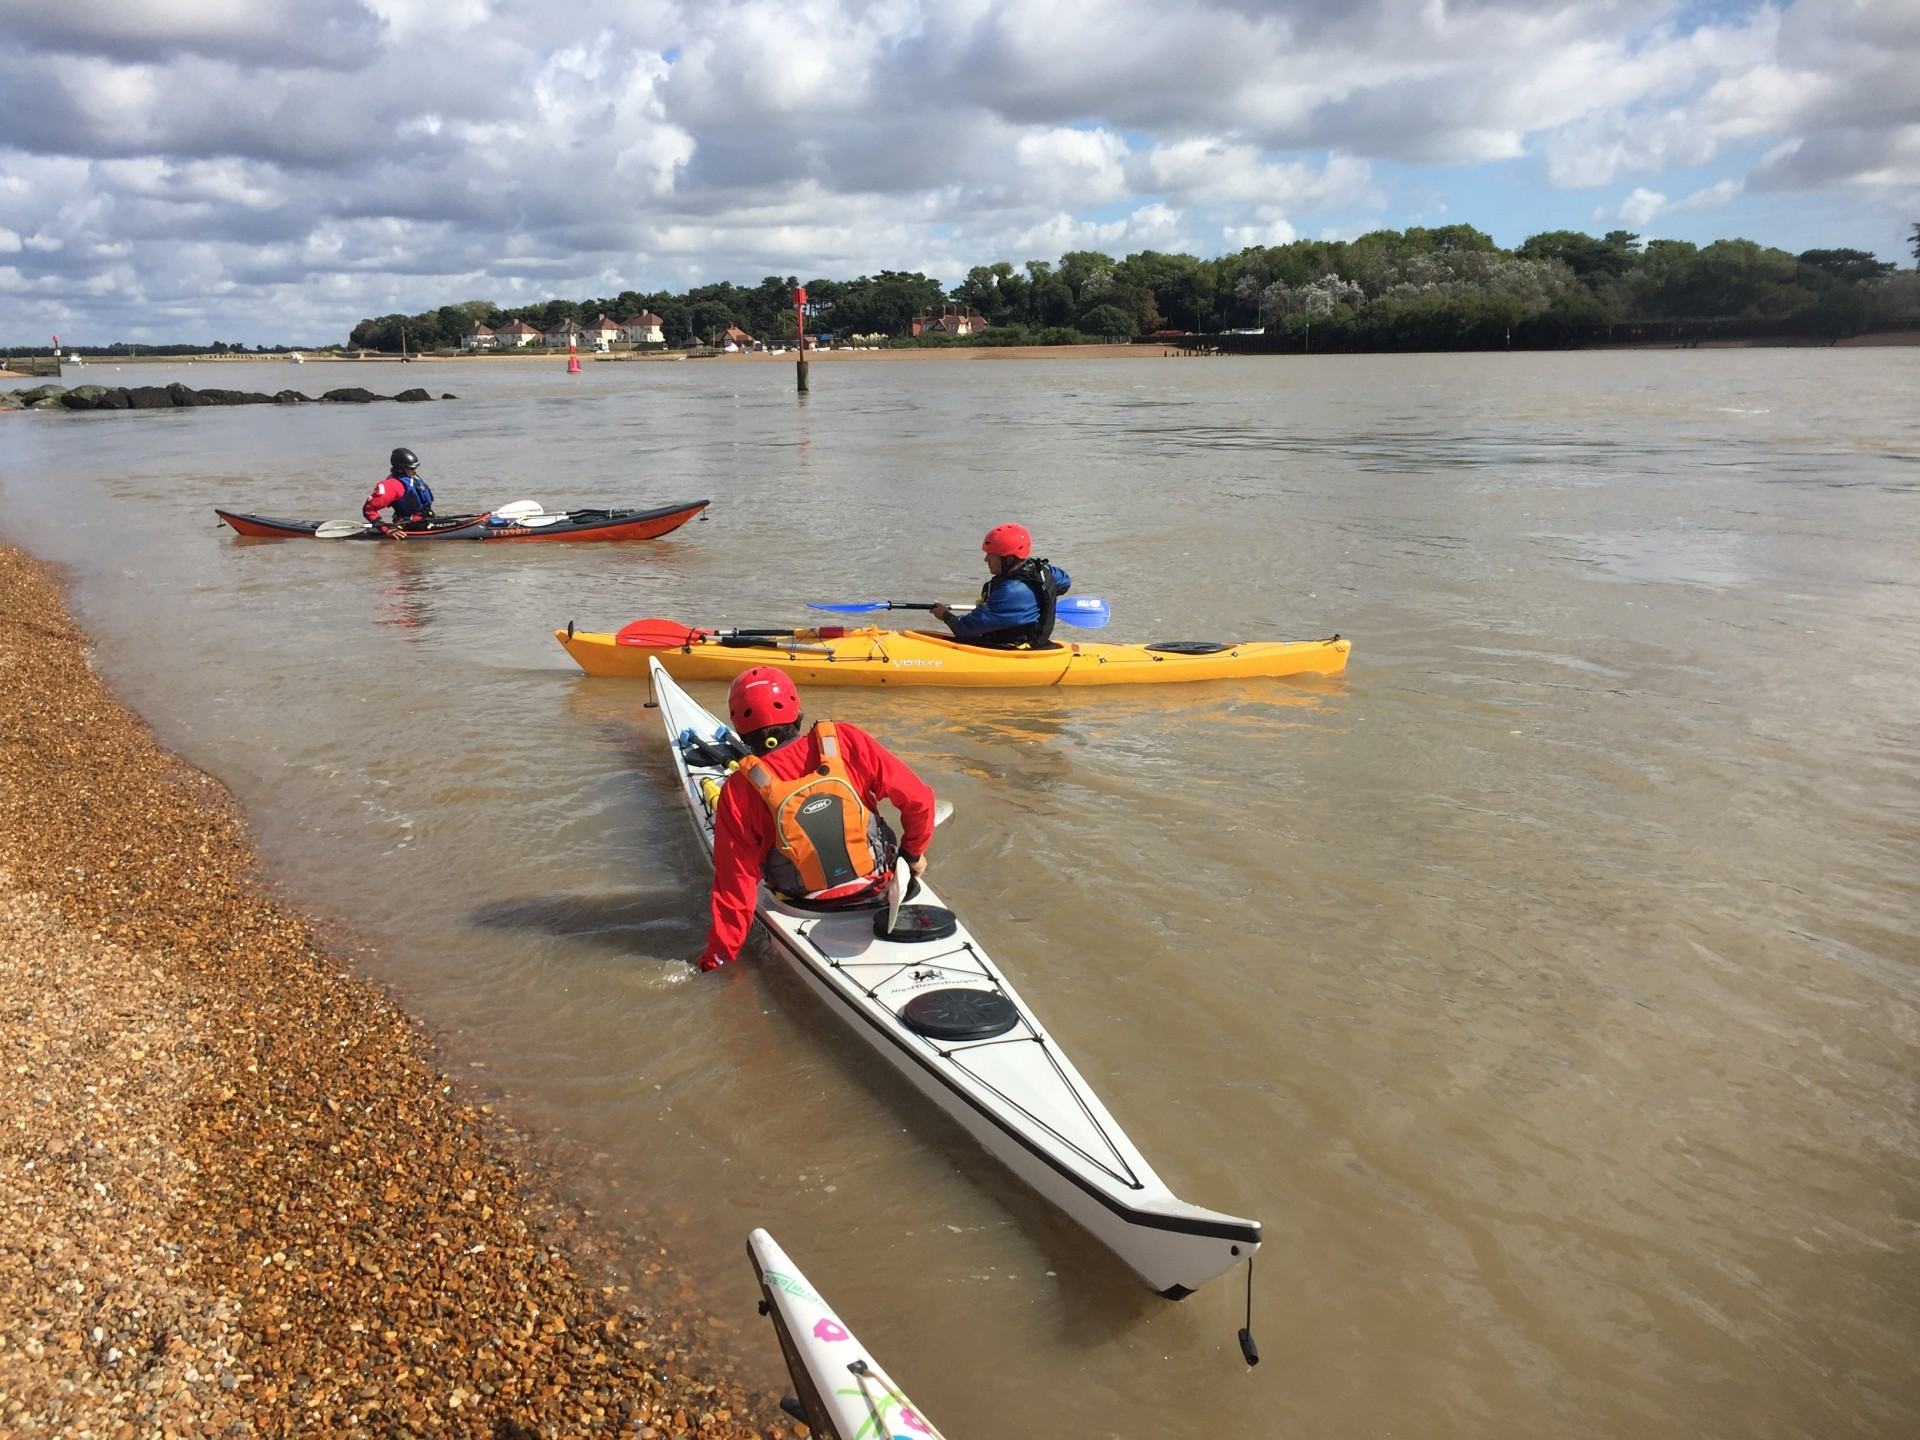 Sea kayakers launching in flat calm tidal conditions at the mouth of the Deben estuary.